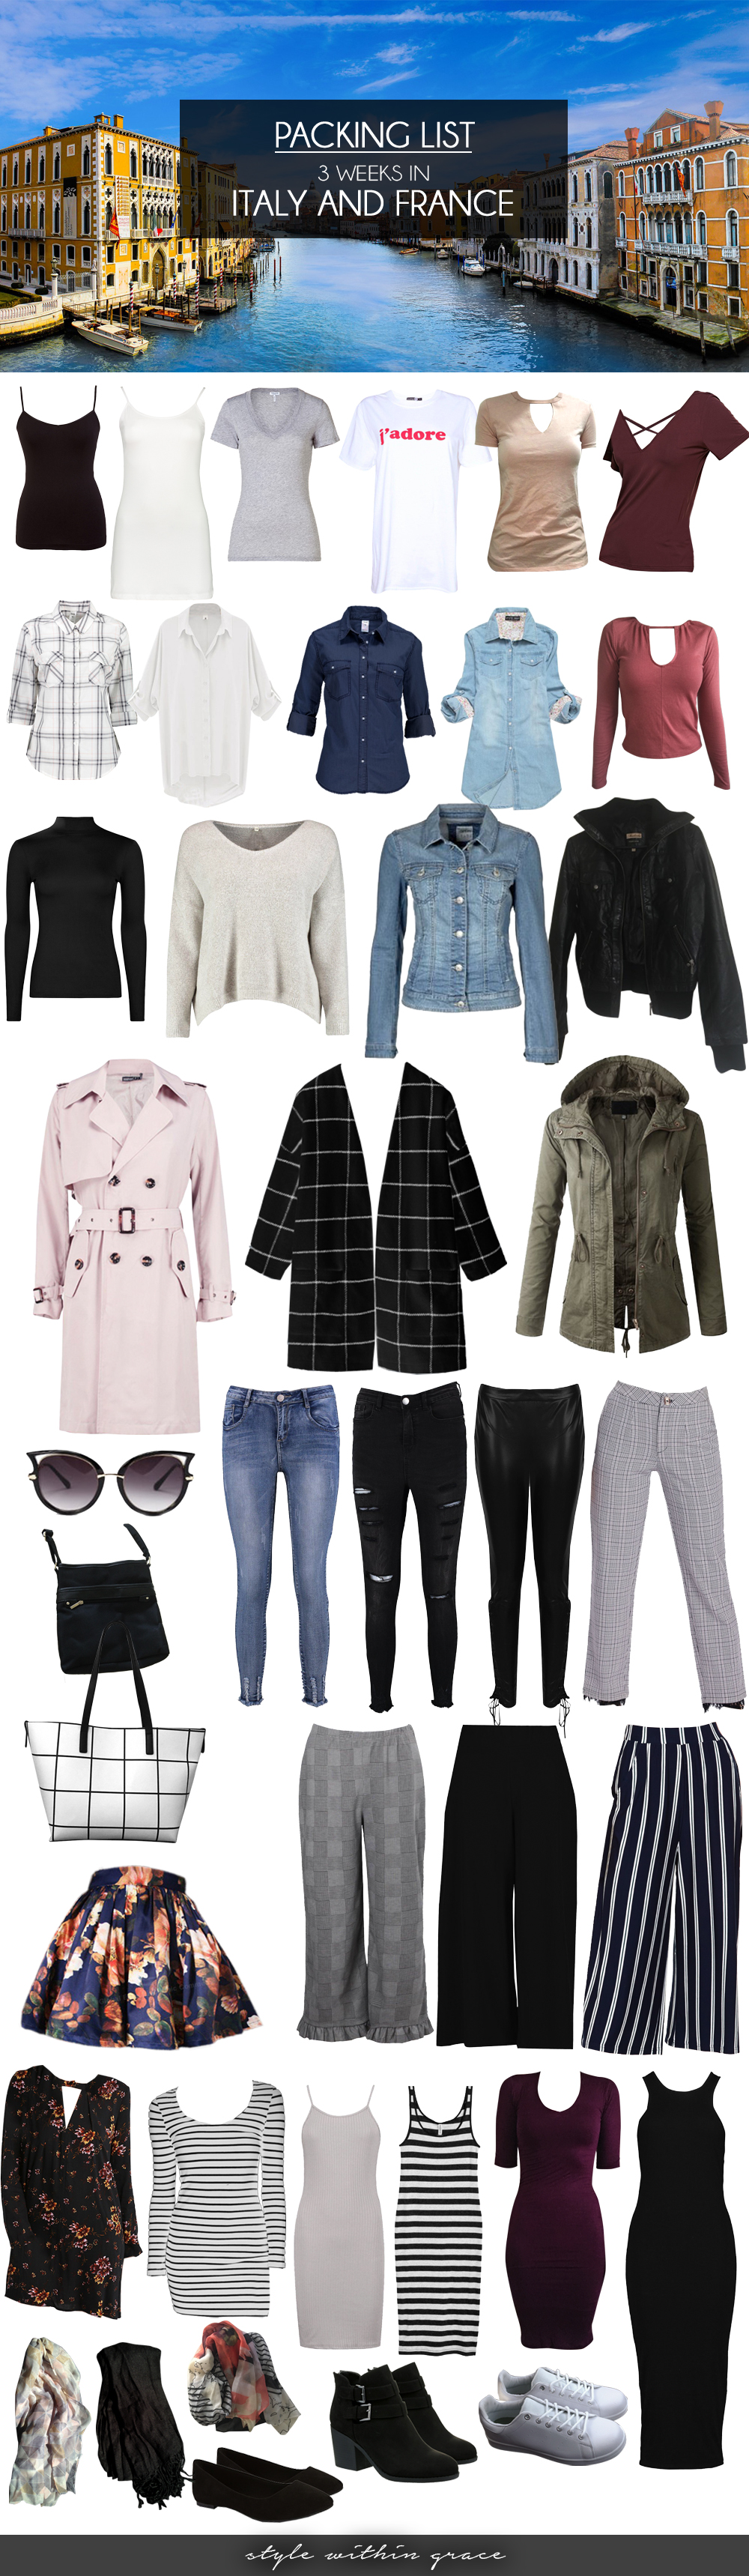 Europe Spring Packing List